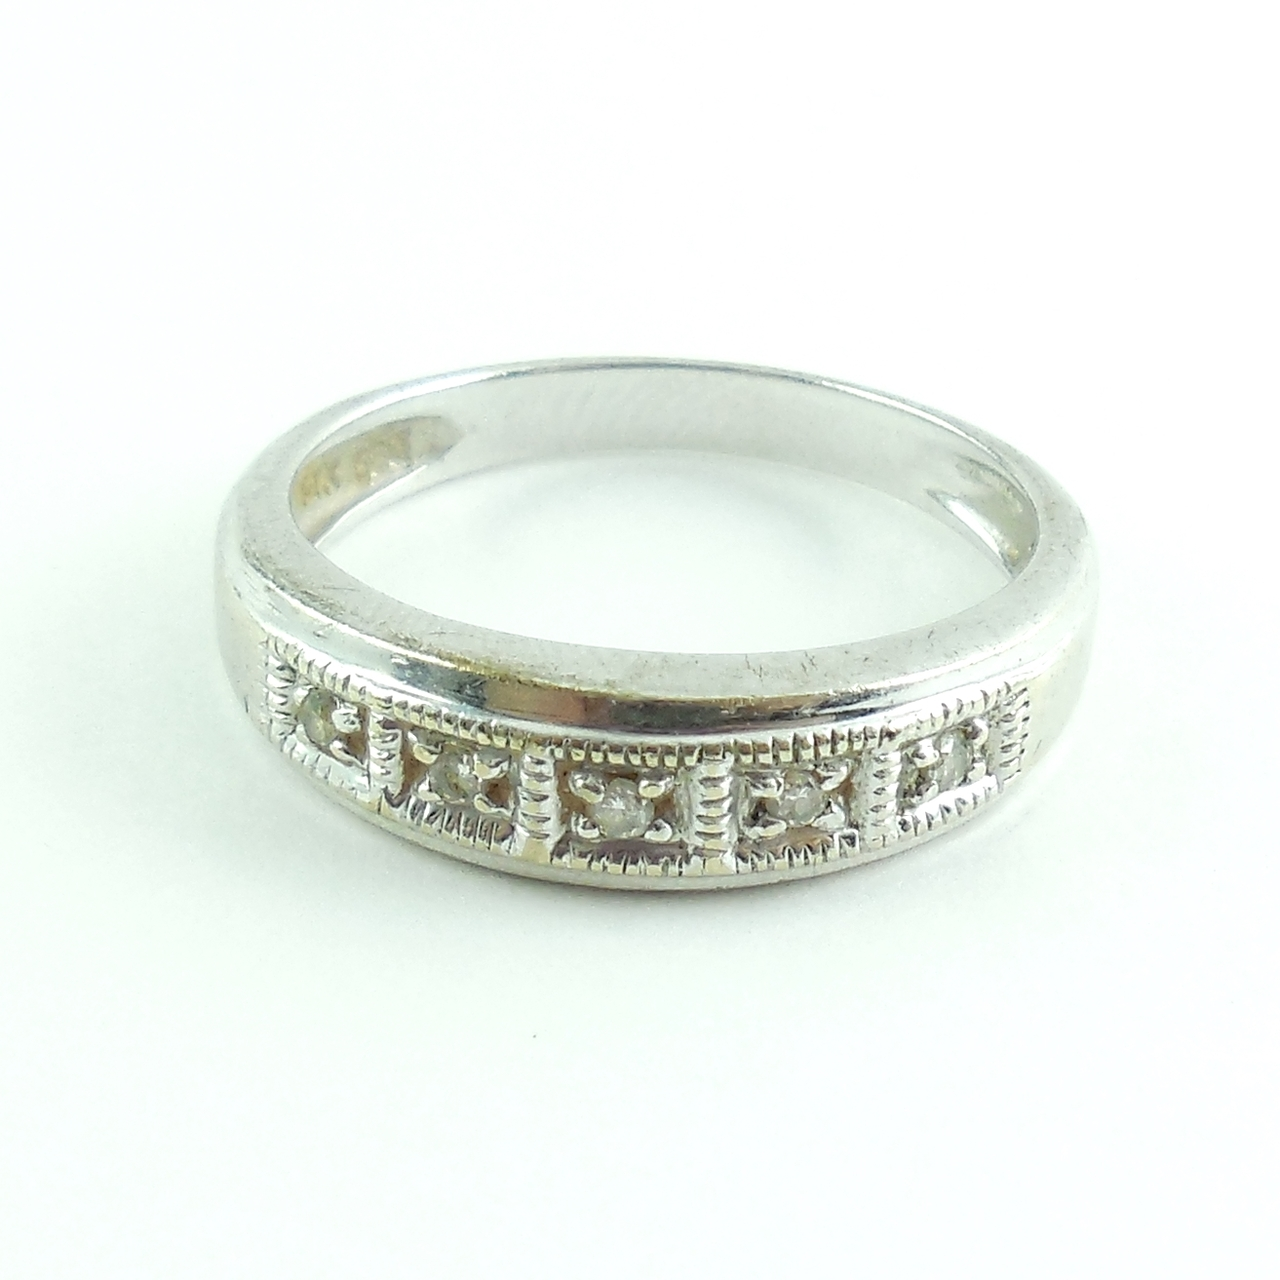 Fancy Xs 14k White Gold Ring Band With Small Diamond Accents Size 6.75